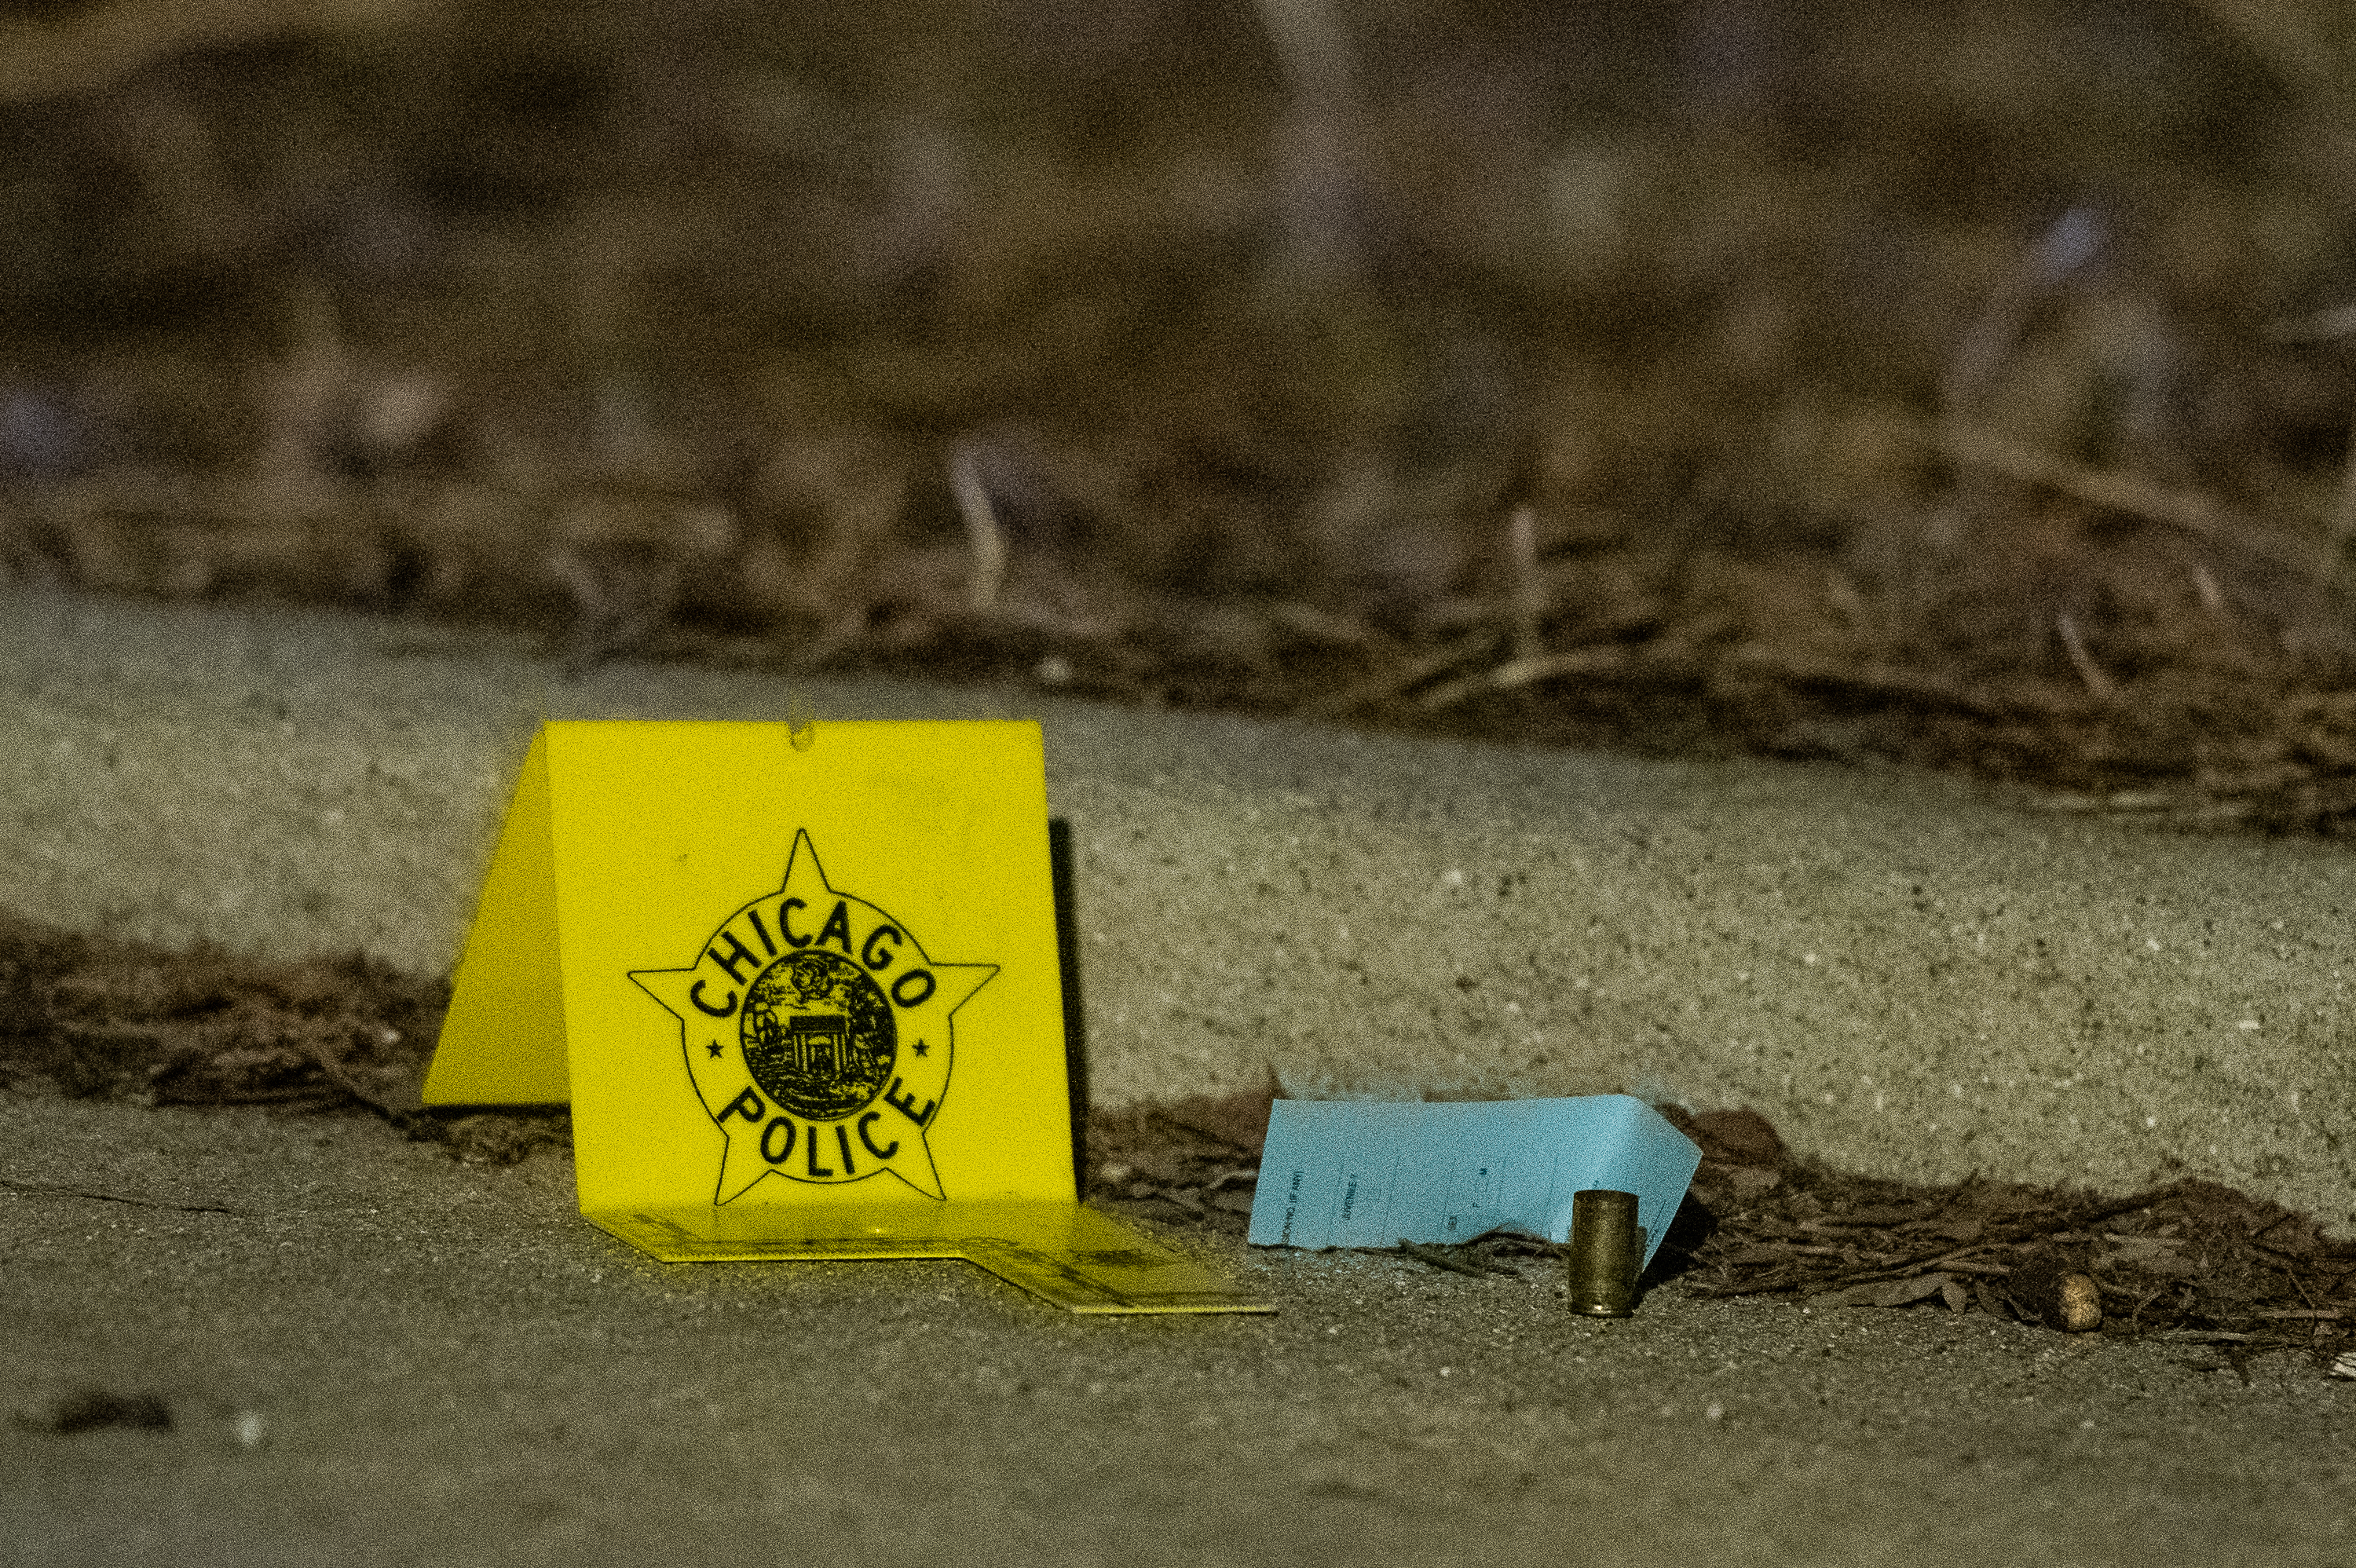 A man was killed and another was hurt in a shooting August 22, 2020, in Little Village.